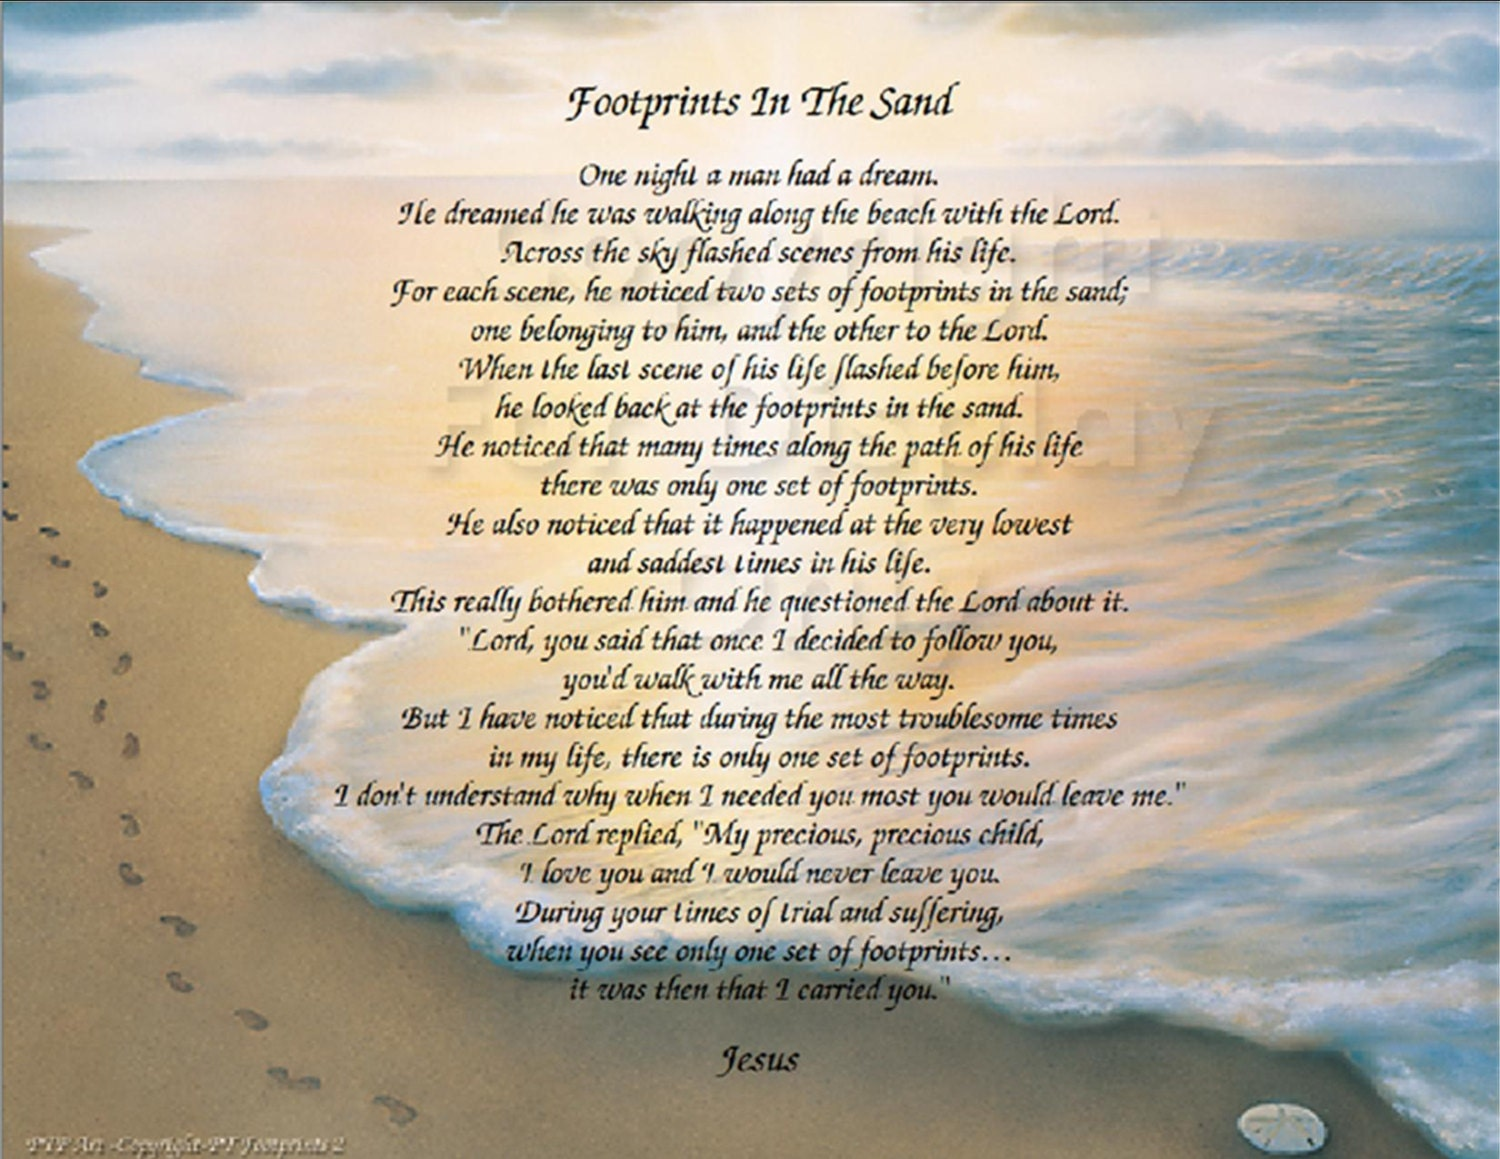 The Footprints in the Sand poem Christian Poem